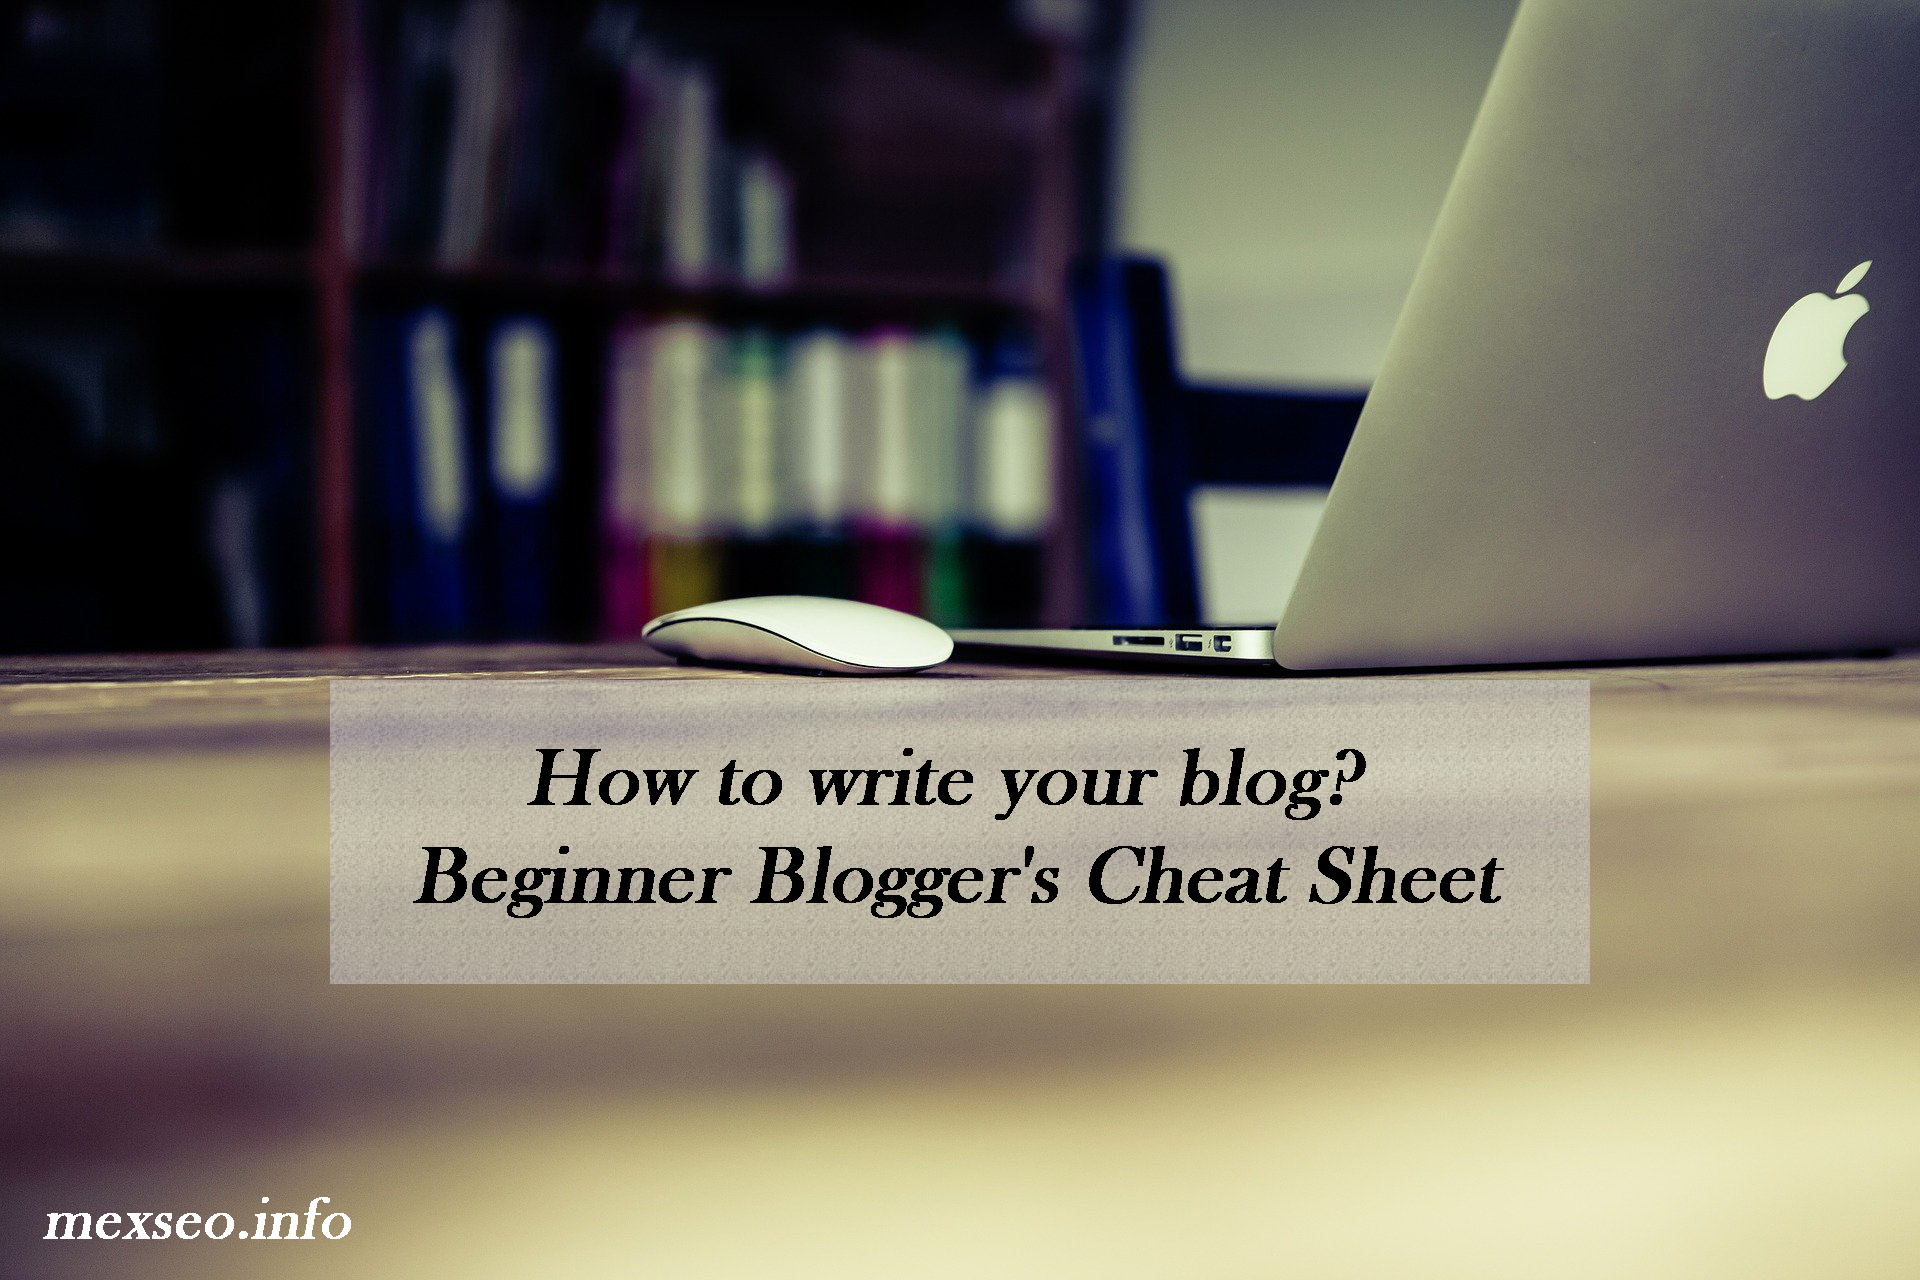 How to write your blog? Beginner Blogger's Cheat Sheet